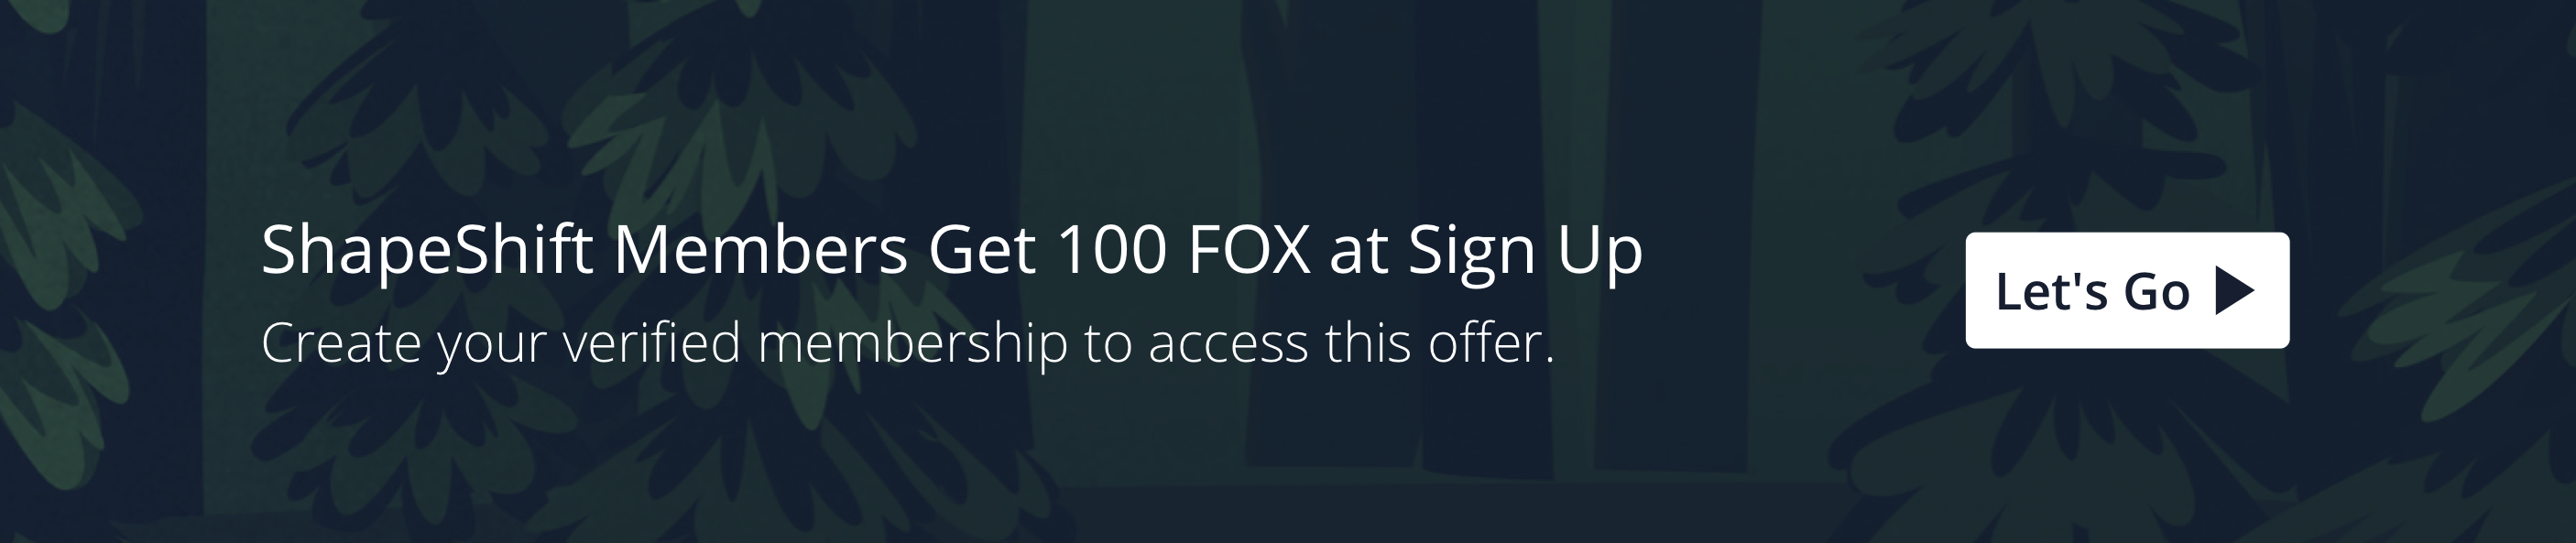 Explore the ShapeShift Platform — the best new way to manage crypto. Create a verified account & get 100 FOX Tokens.